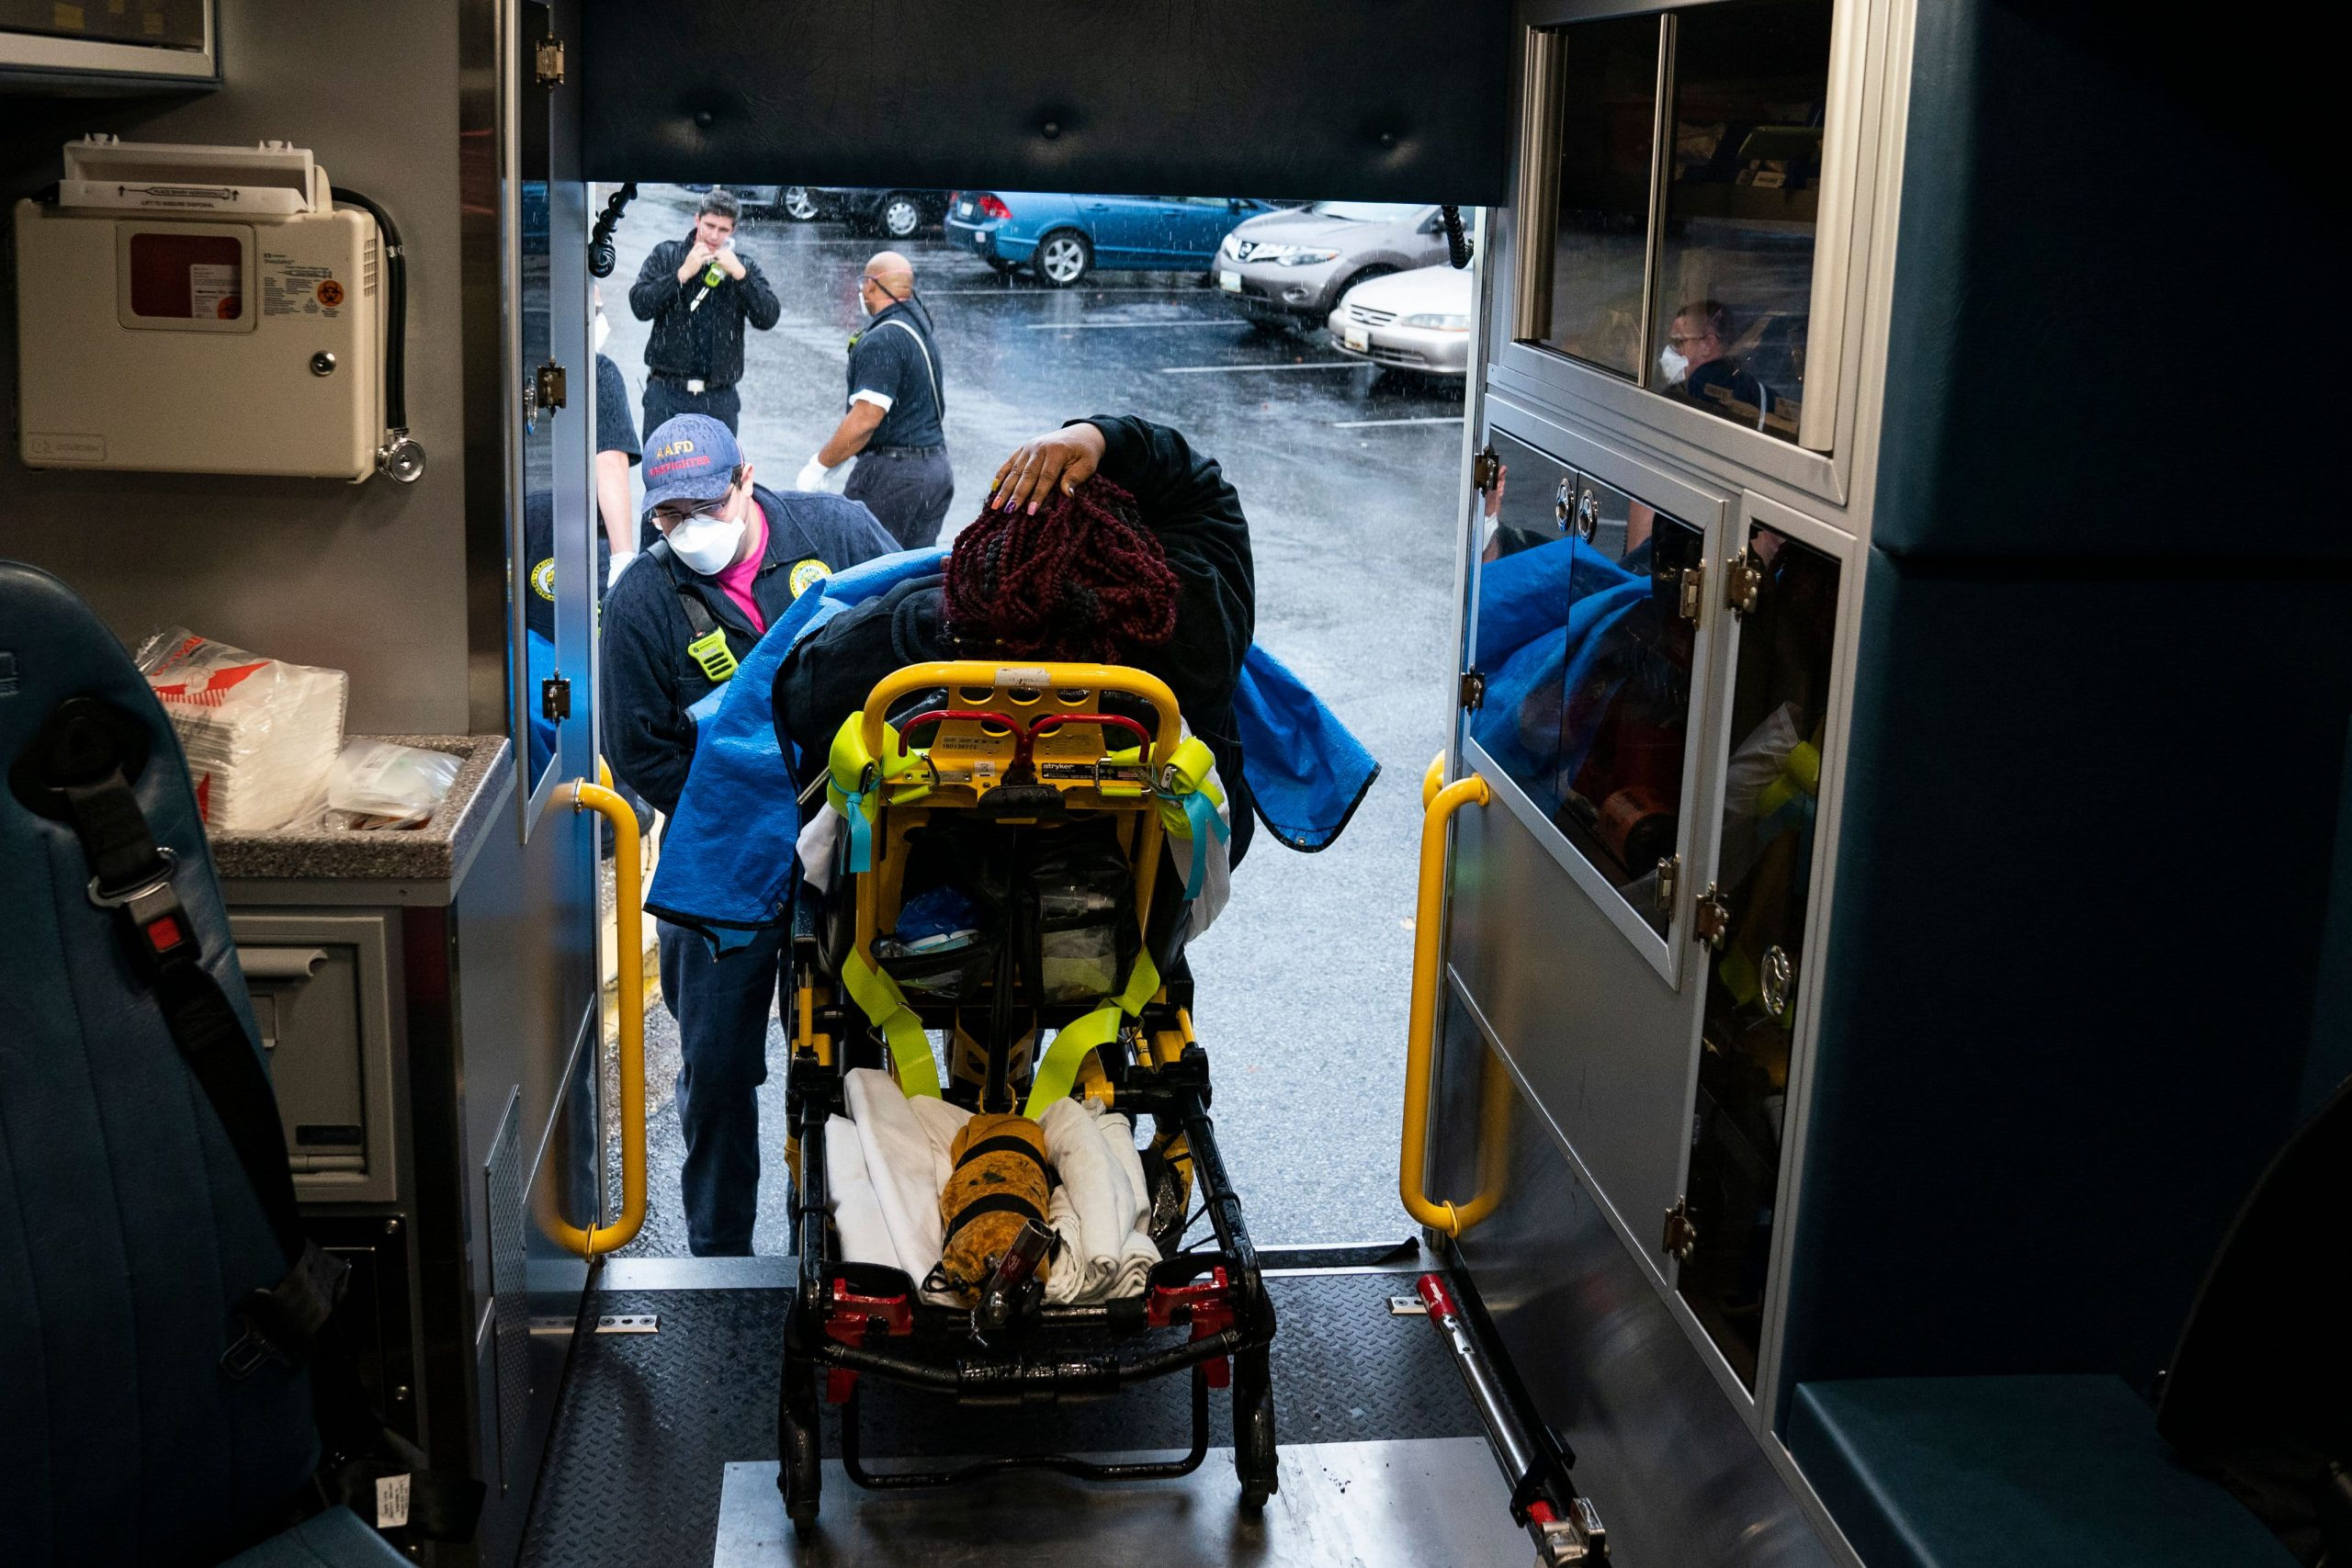 Paramedics underneath 'excessive stress' as Covid toll climbs: Ambulance firm CEOs